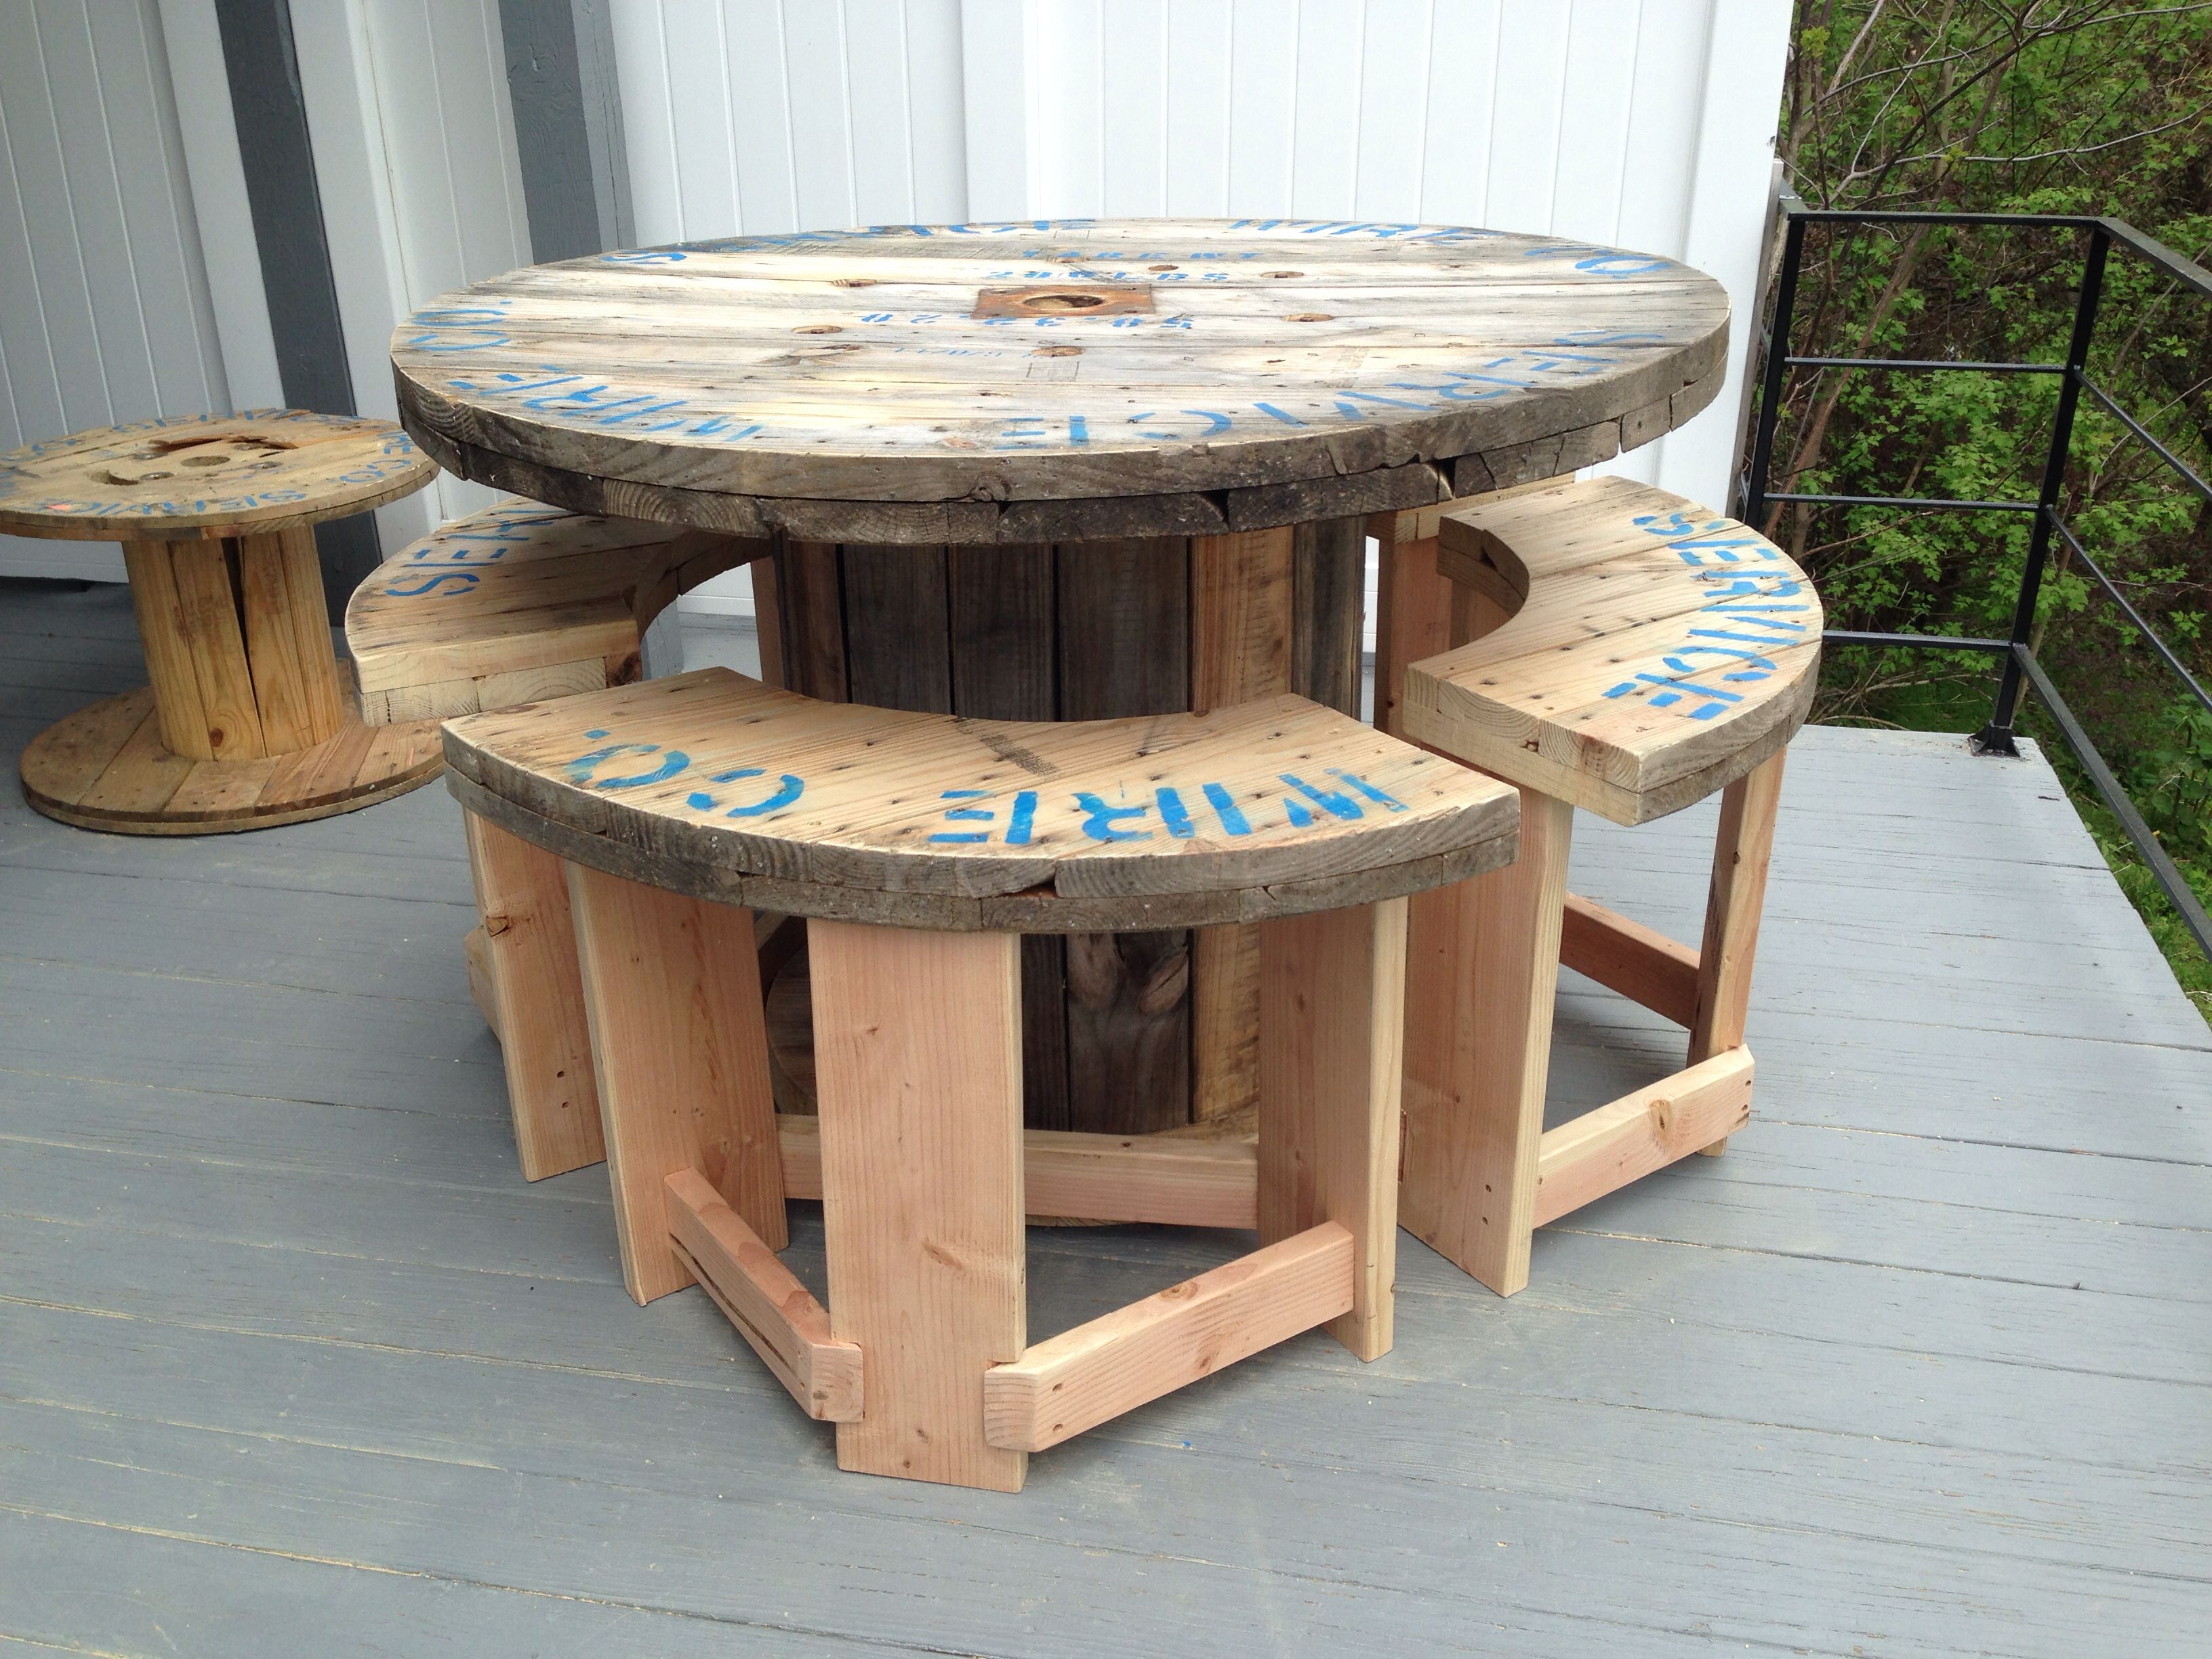 539 Wire Spool I Made Into A Bar Height Patio Table With 4